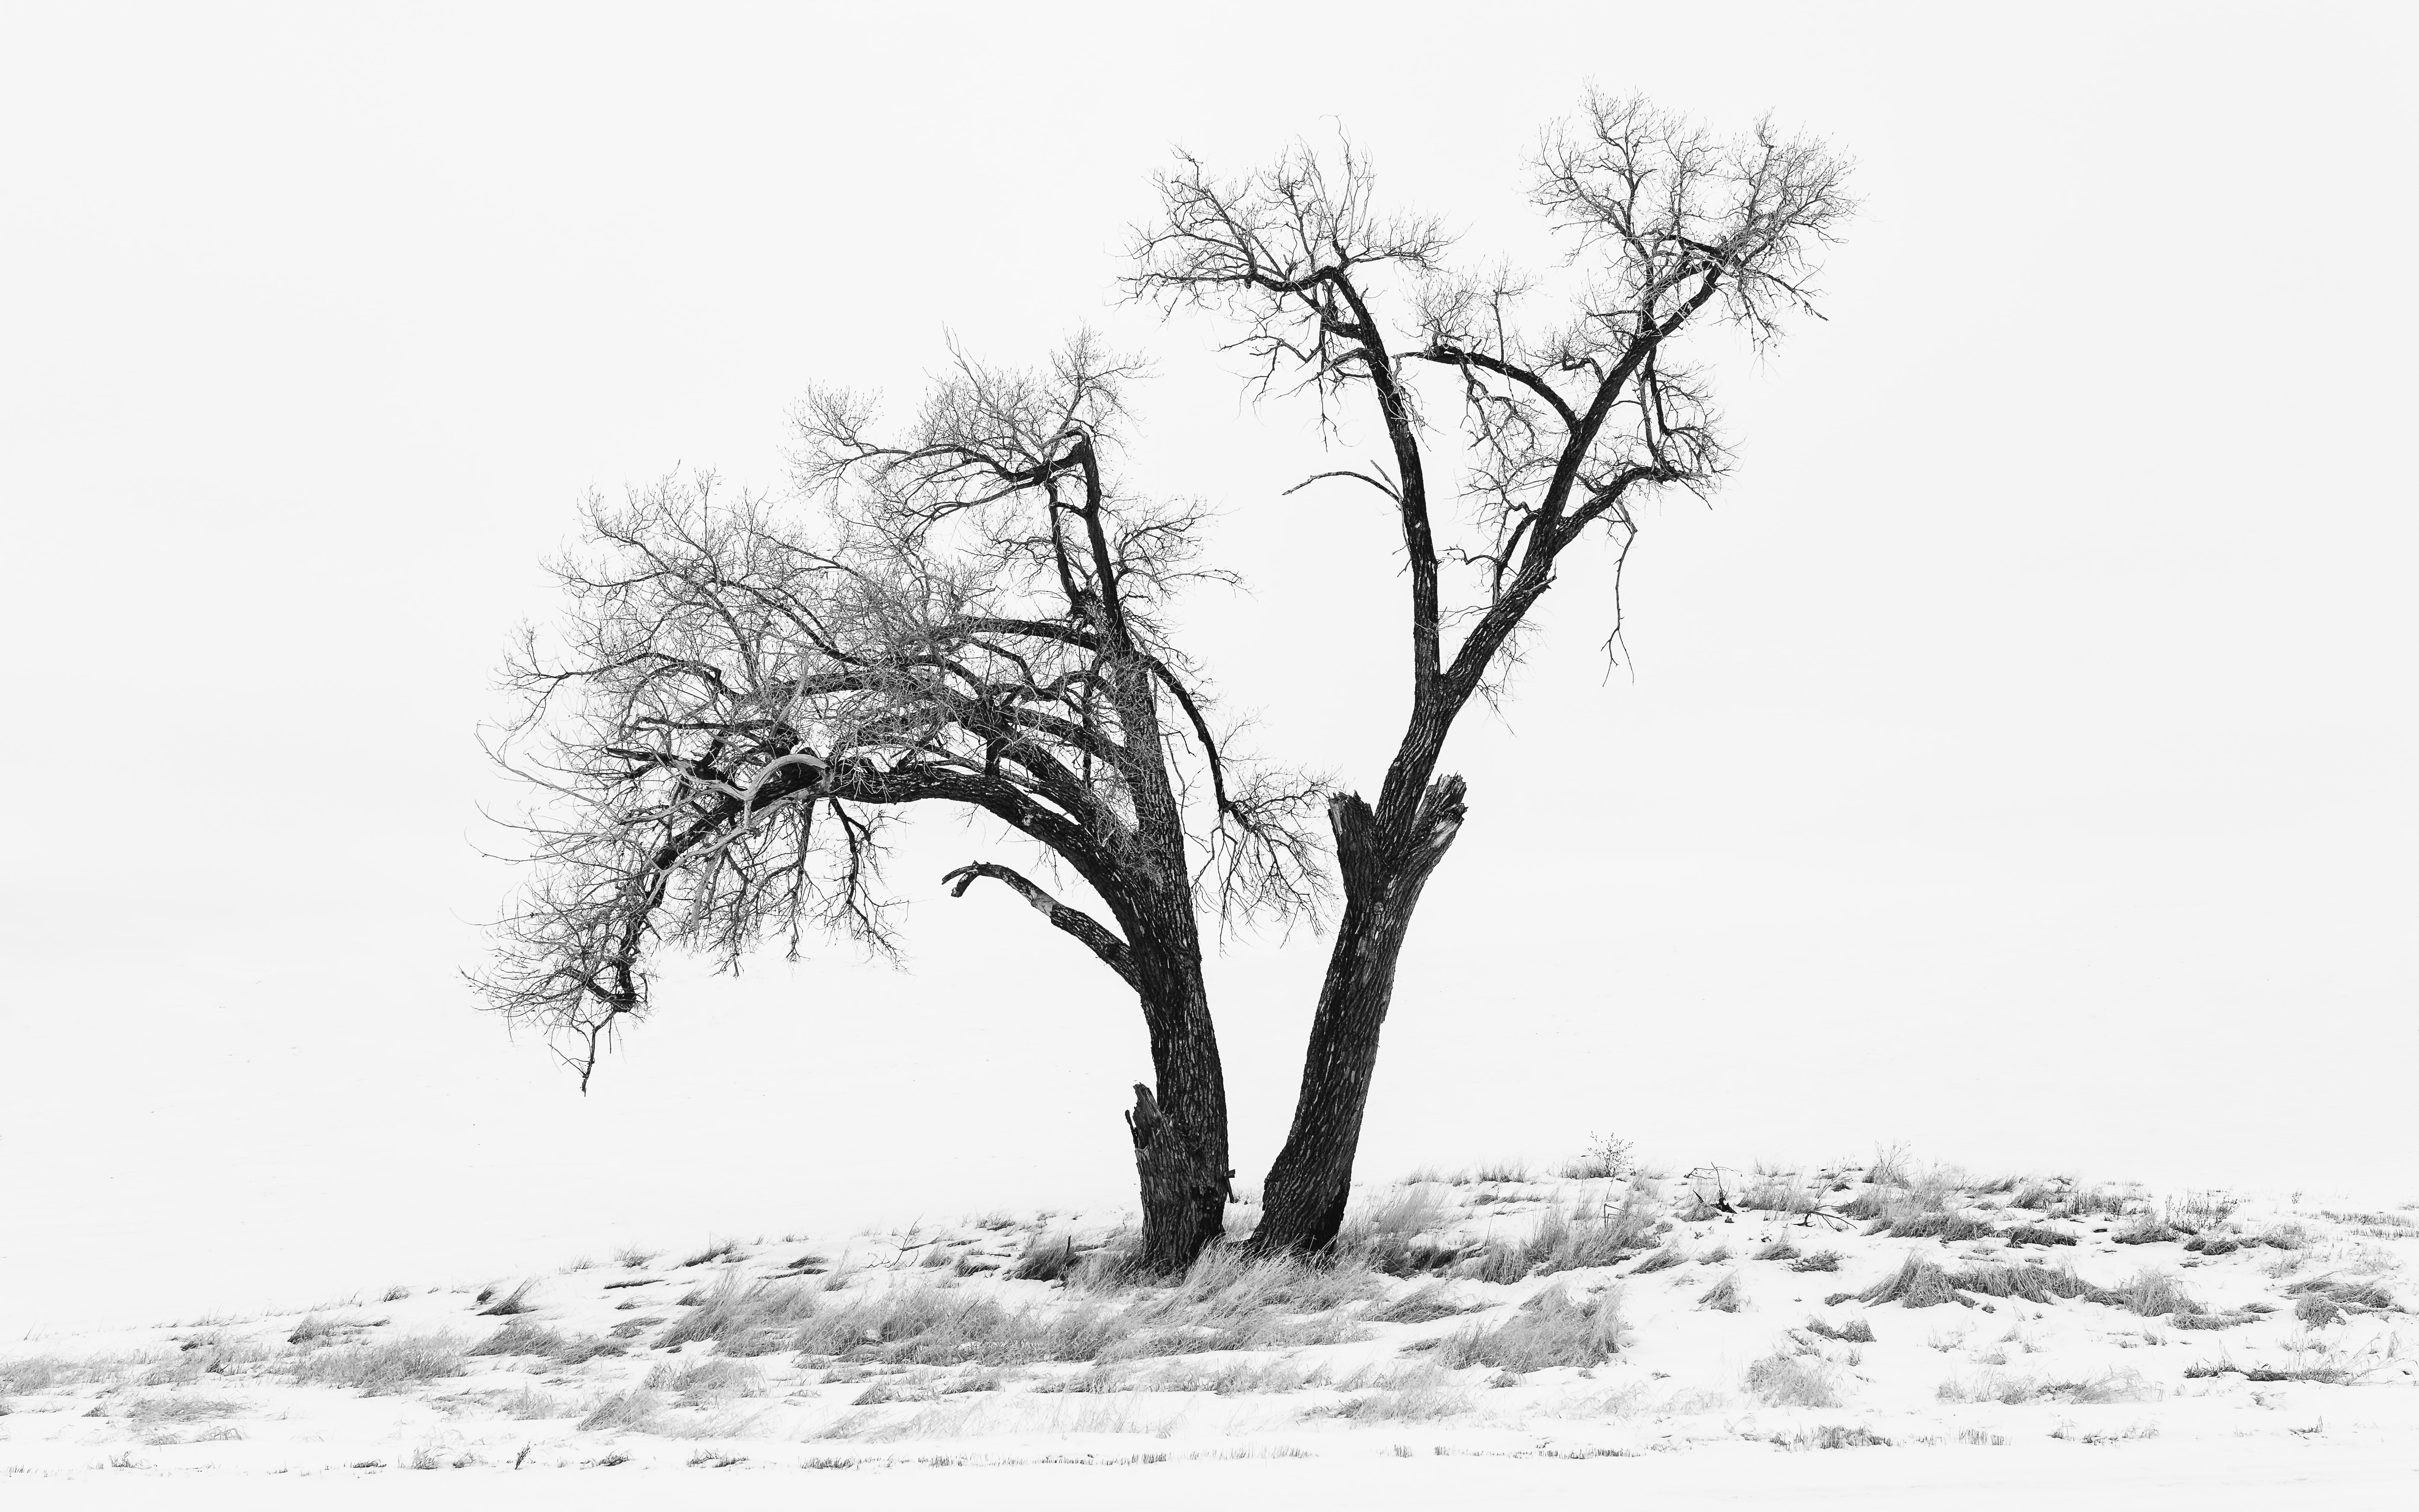 landscape photography of snow field and bare tree